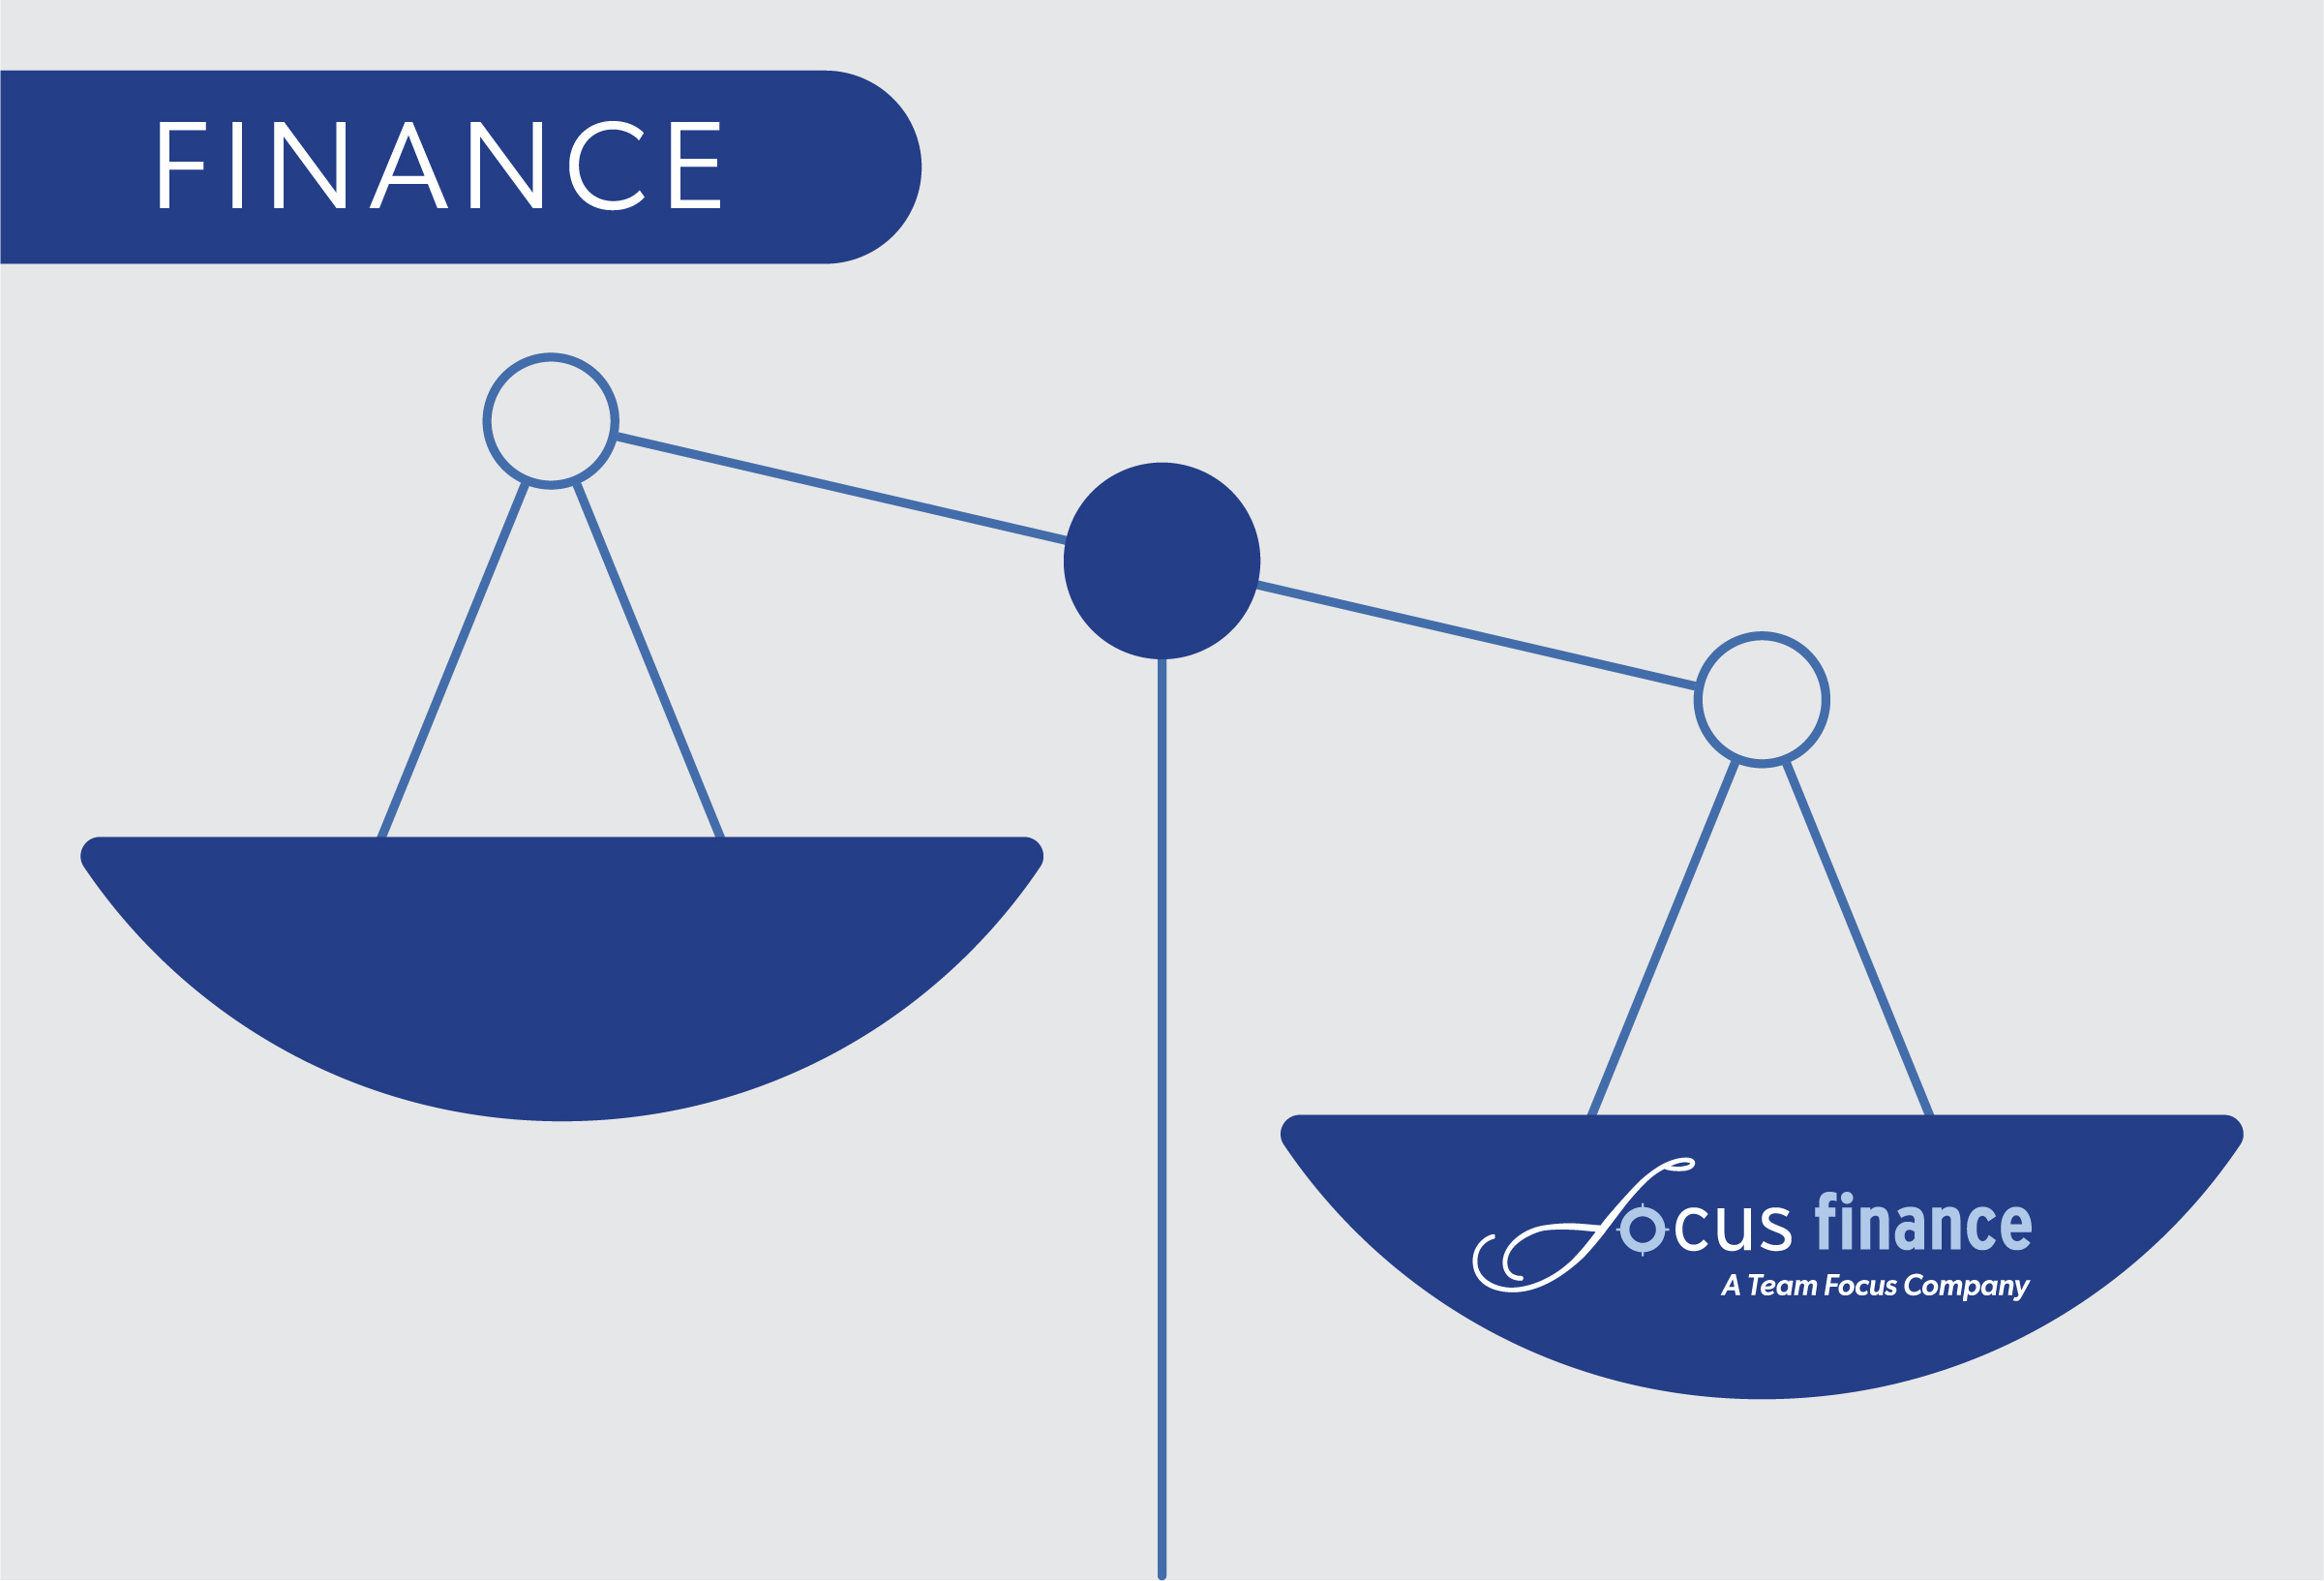 Tip the scales in your favor with Focus Finance